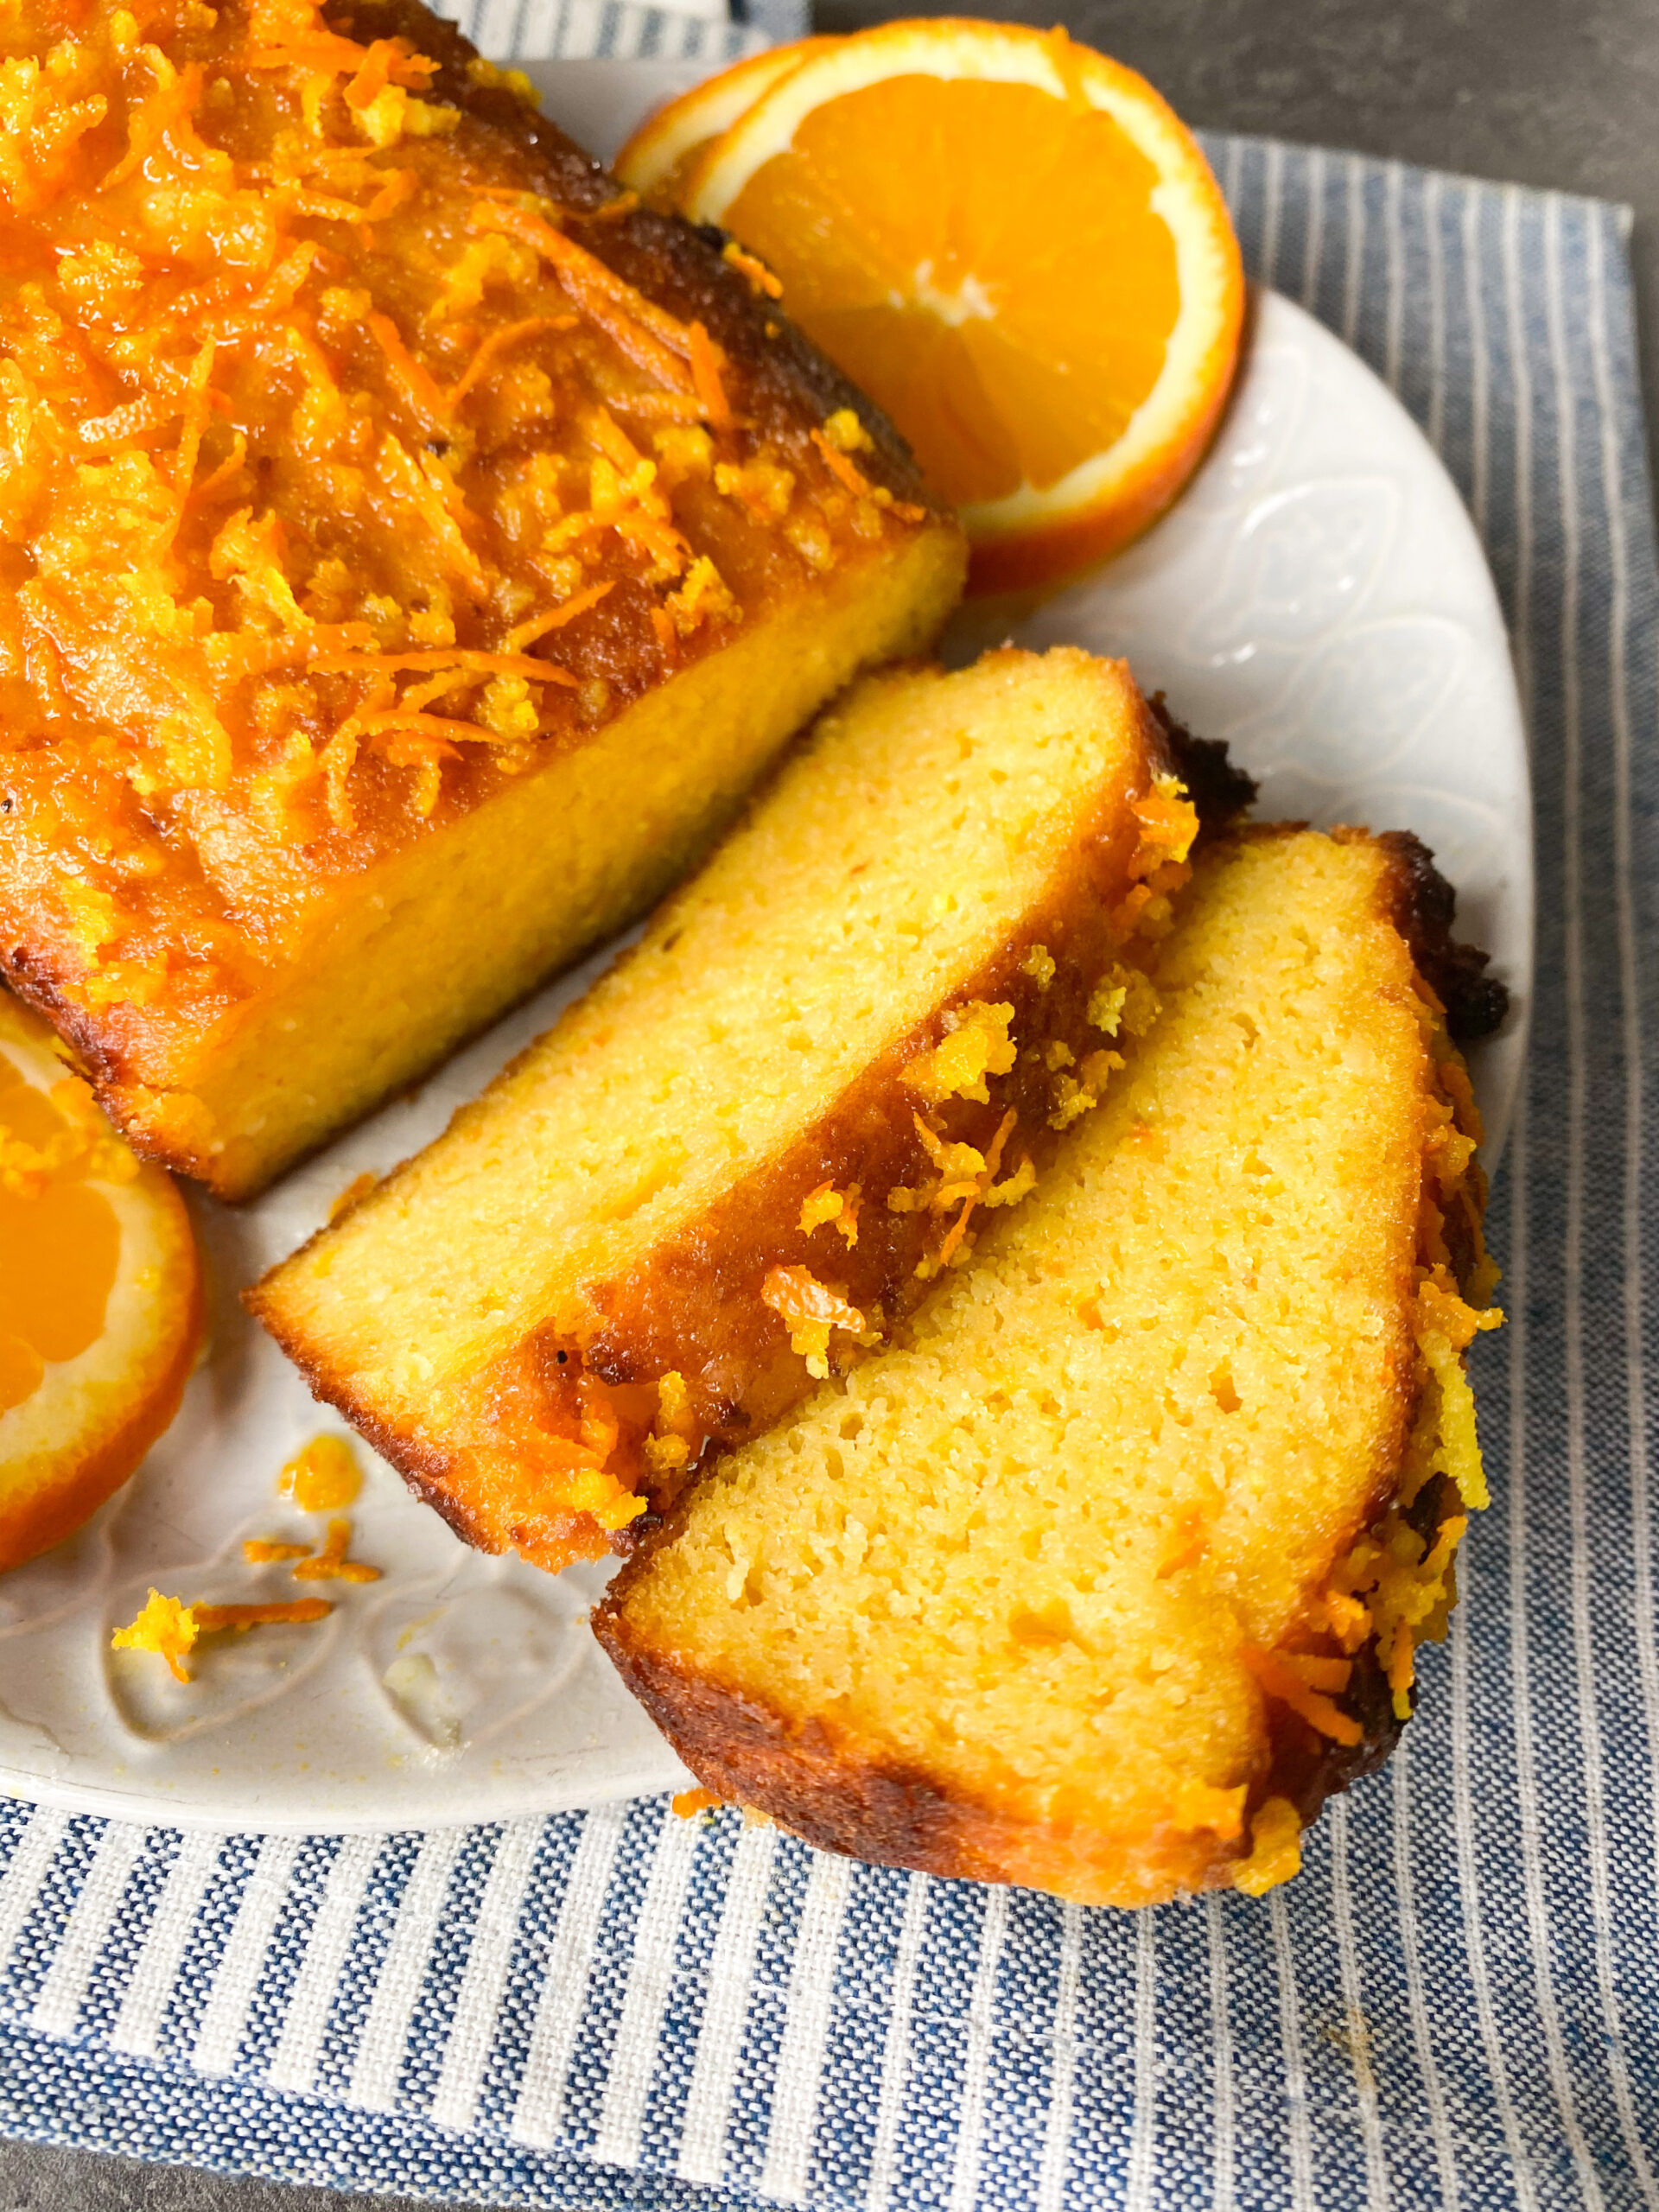 Picture of keto orange and almond loaf